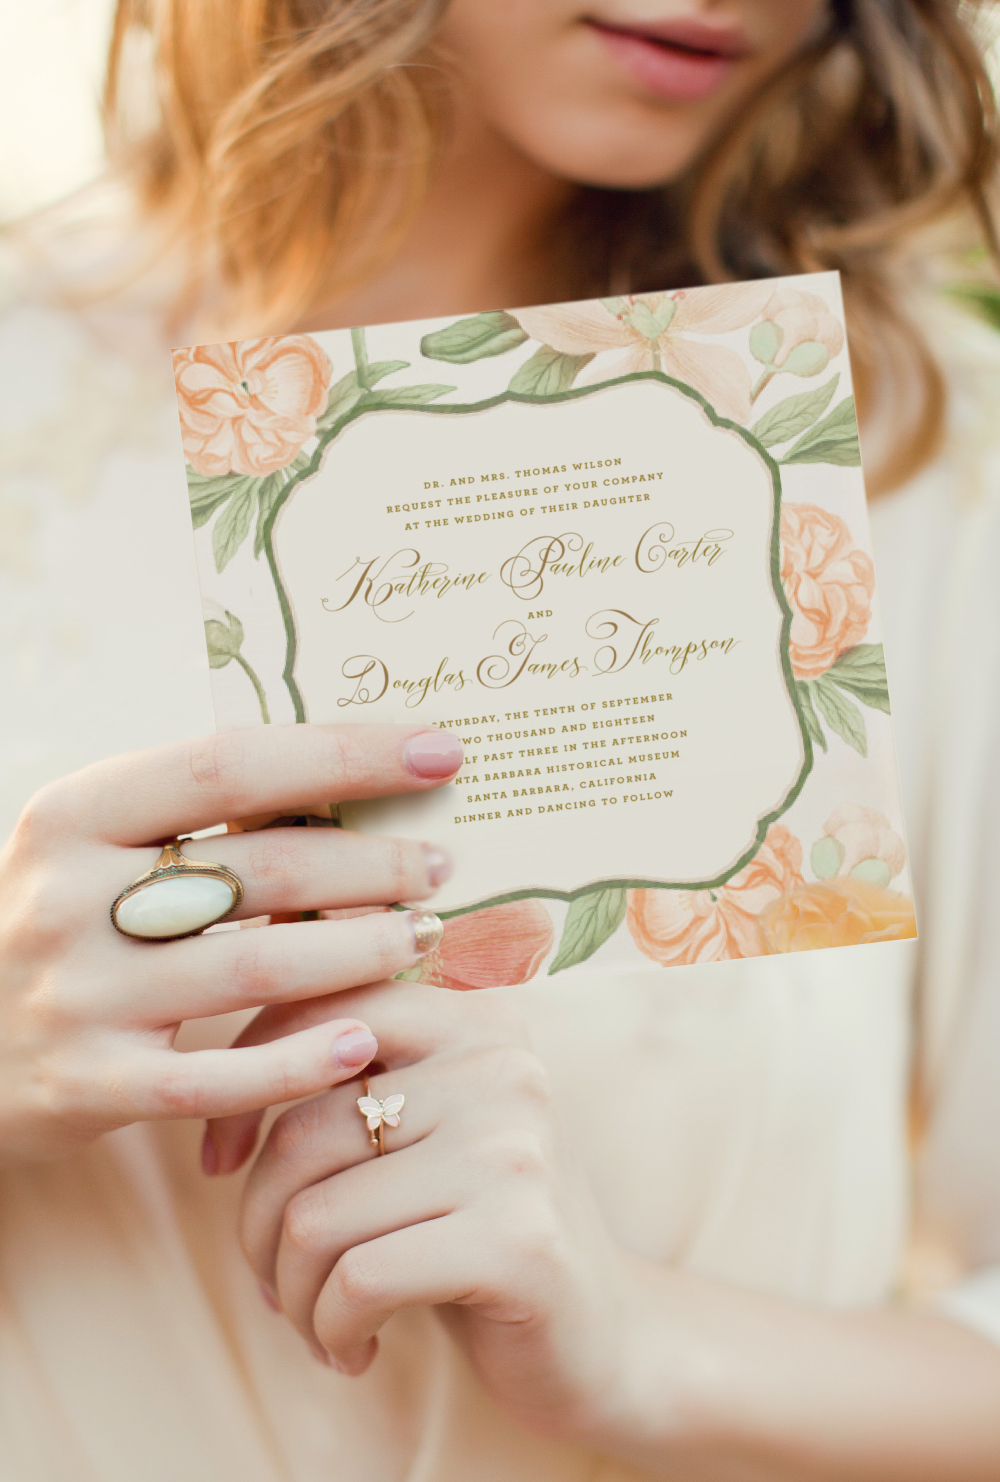 peach-floral-square-wedding-invitation-gold-calligraphy-soft-coral-garden-wedding.jpg